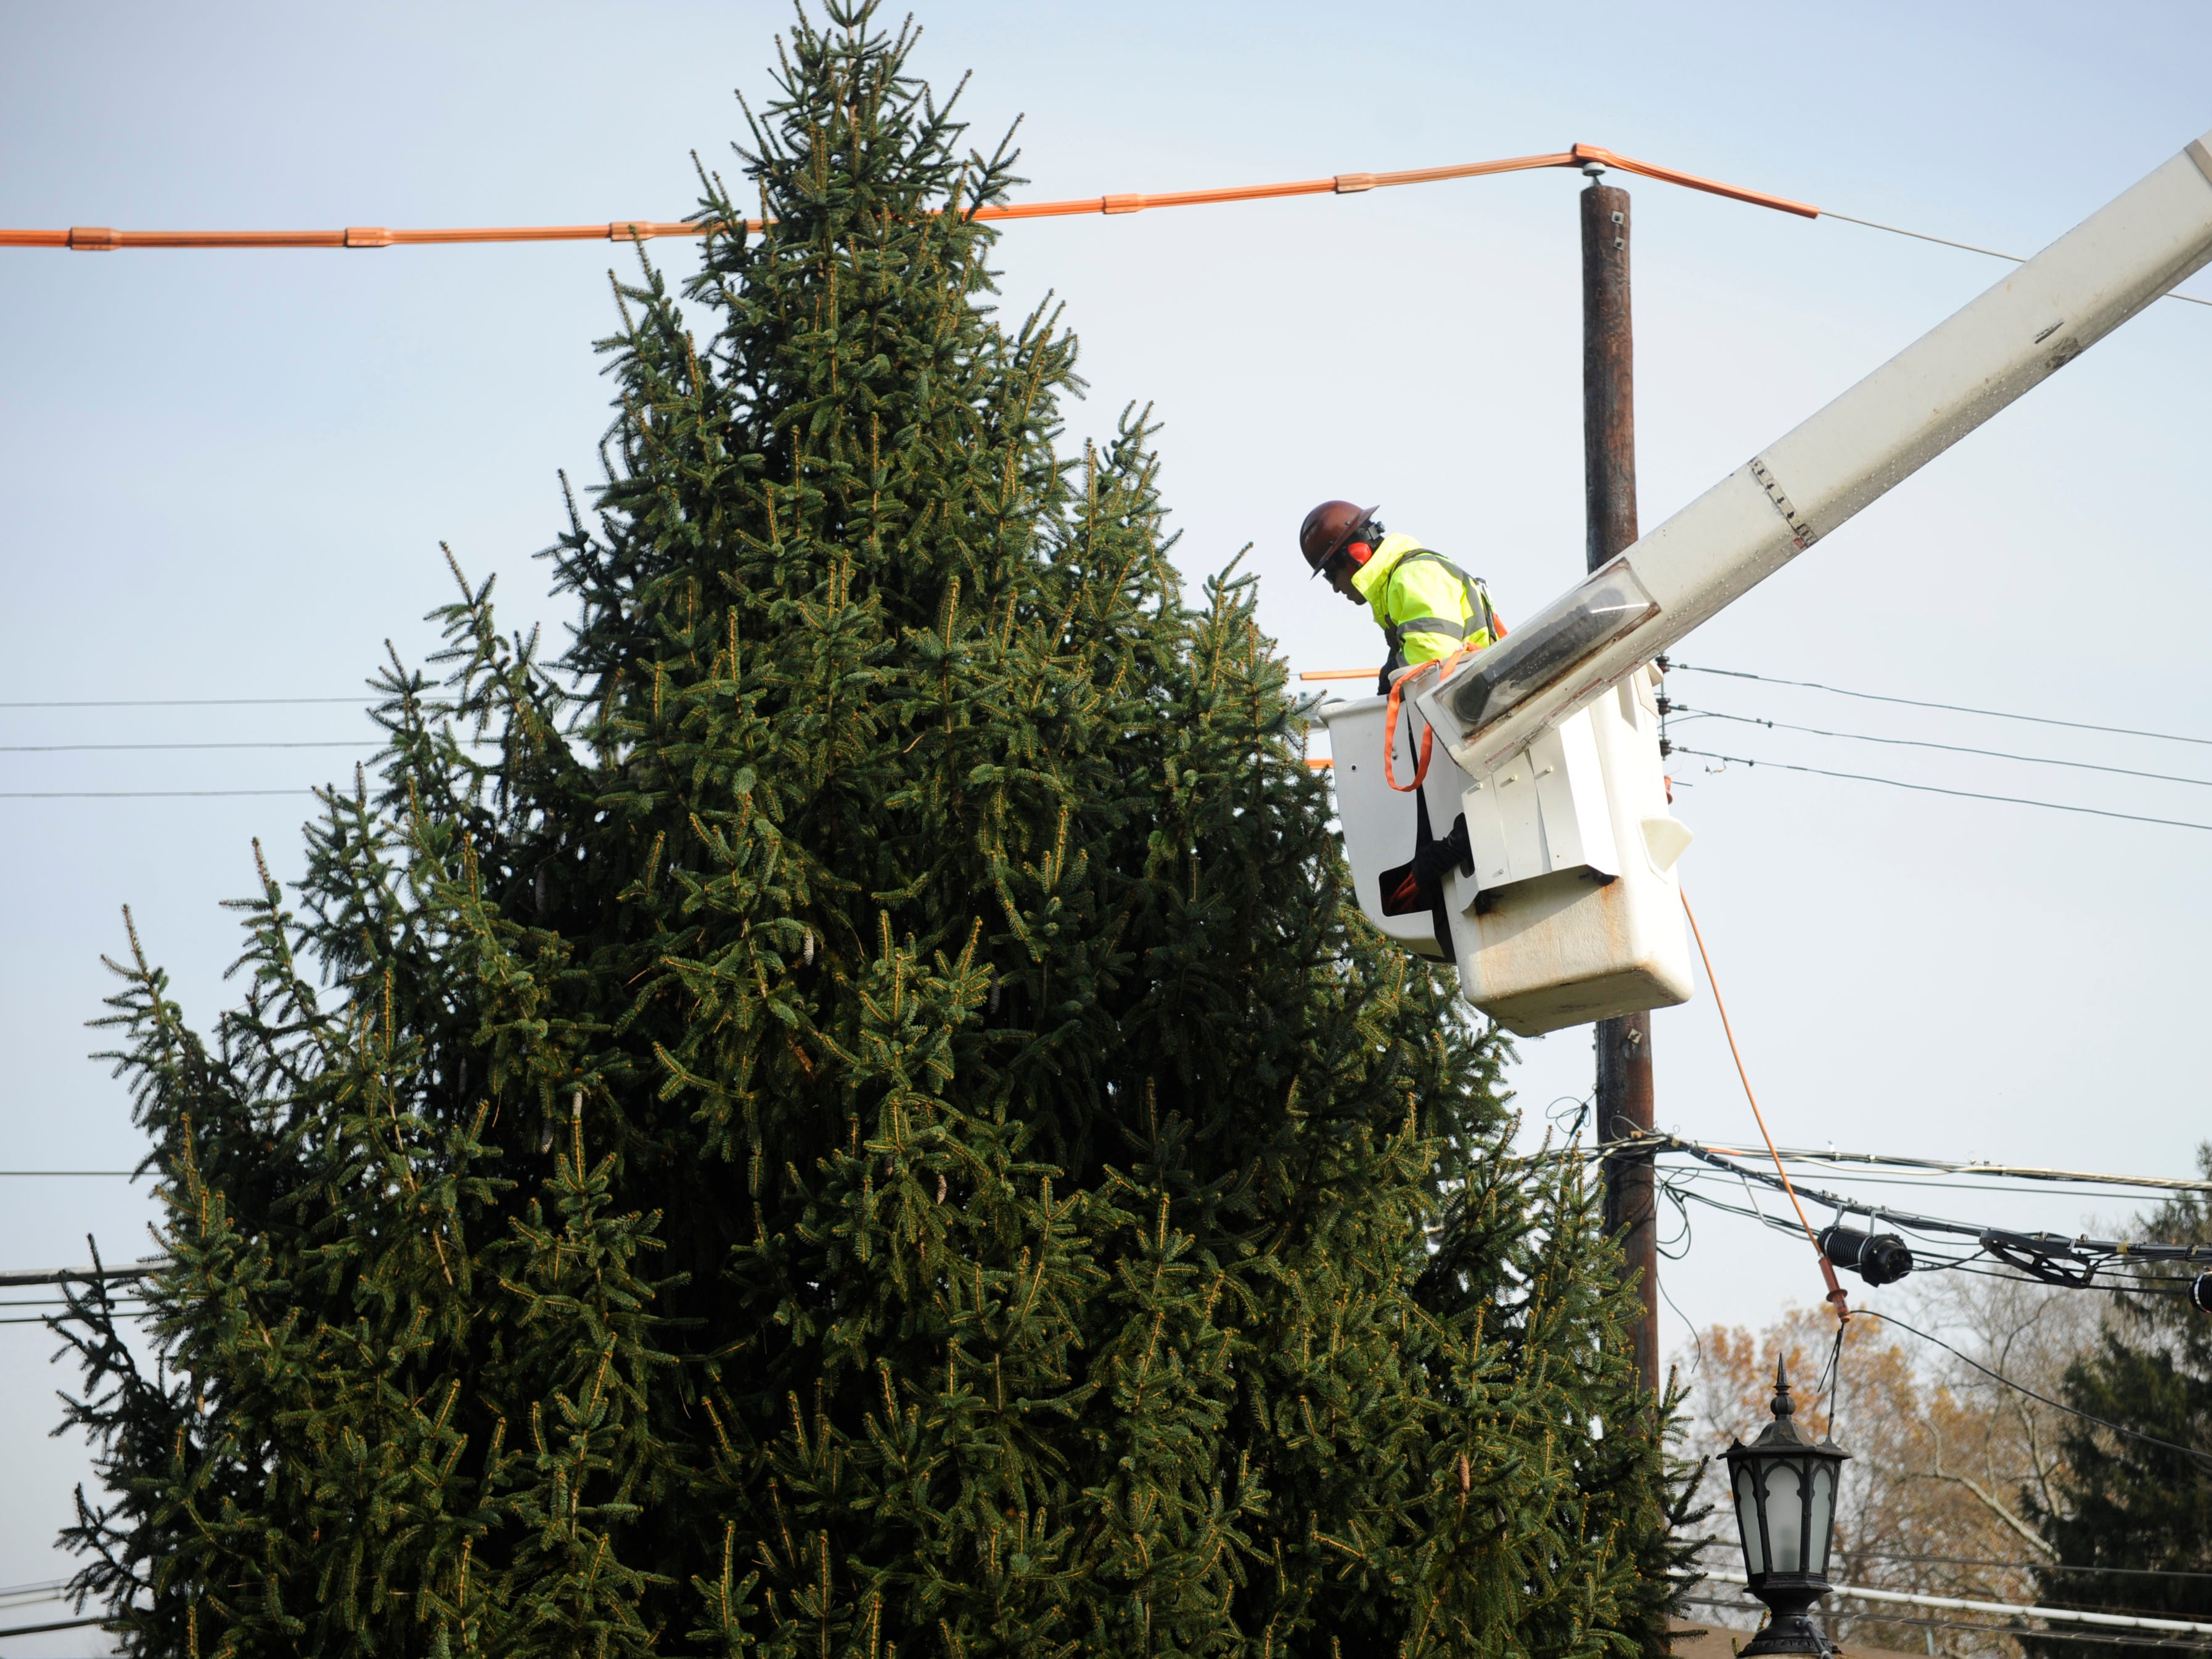 Vineland public works employee David Rodriguez secures a rope to a donated Christmas tree that the department harvested for city hall on Monday, November 19, 2018.